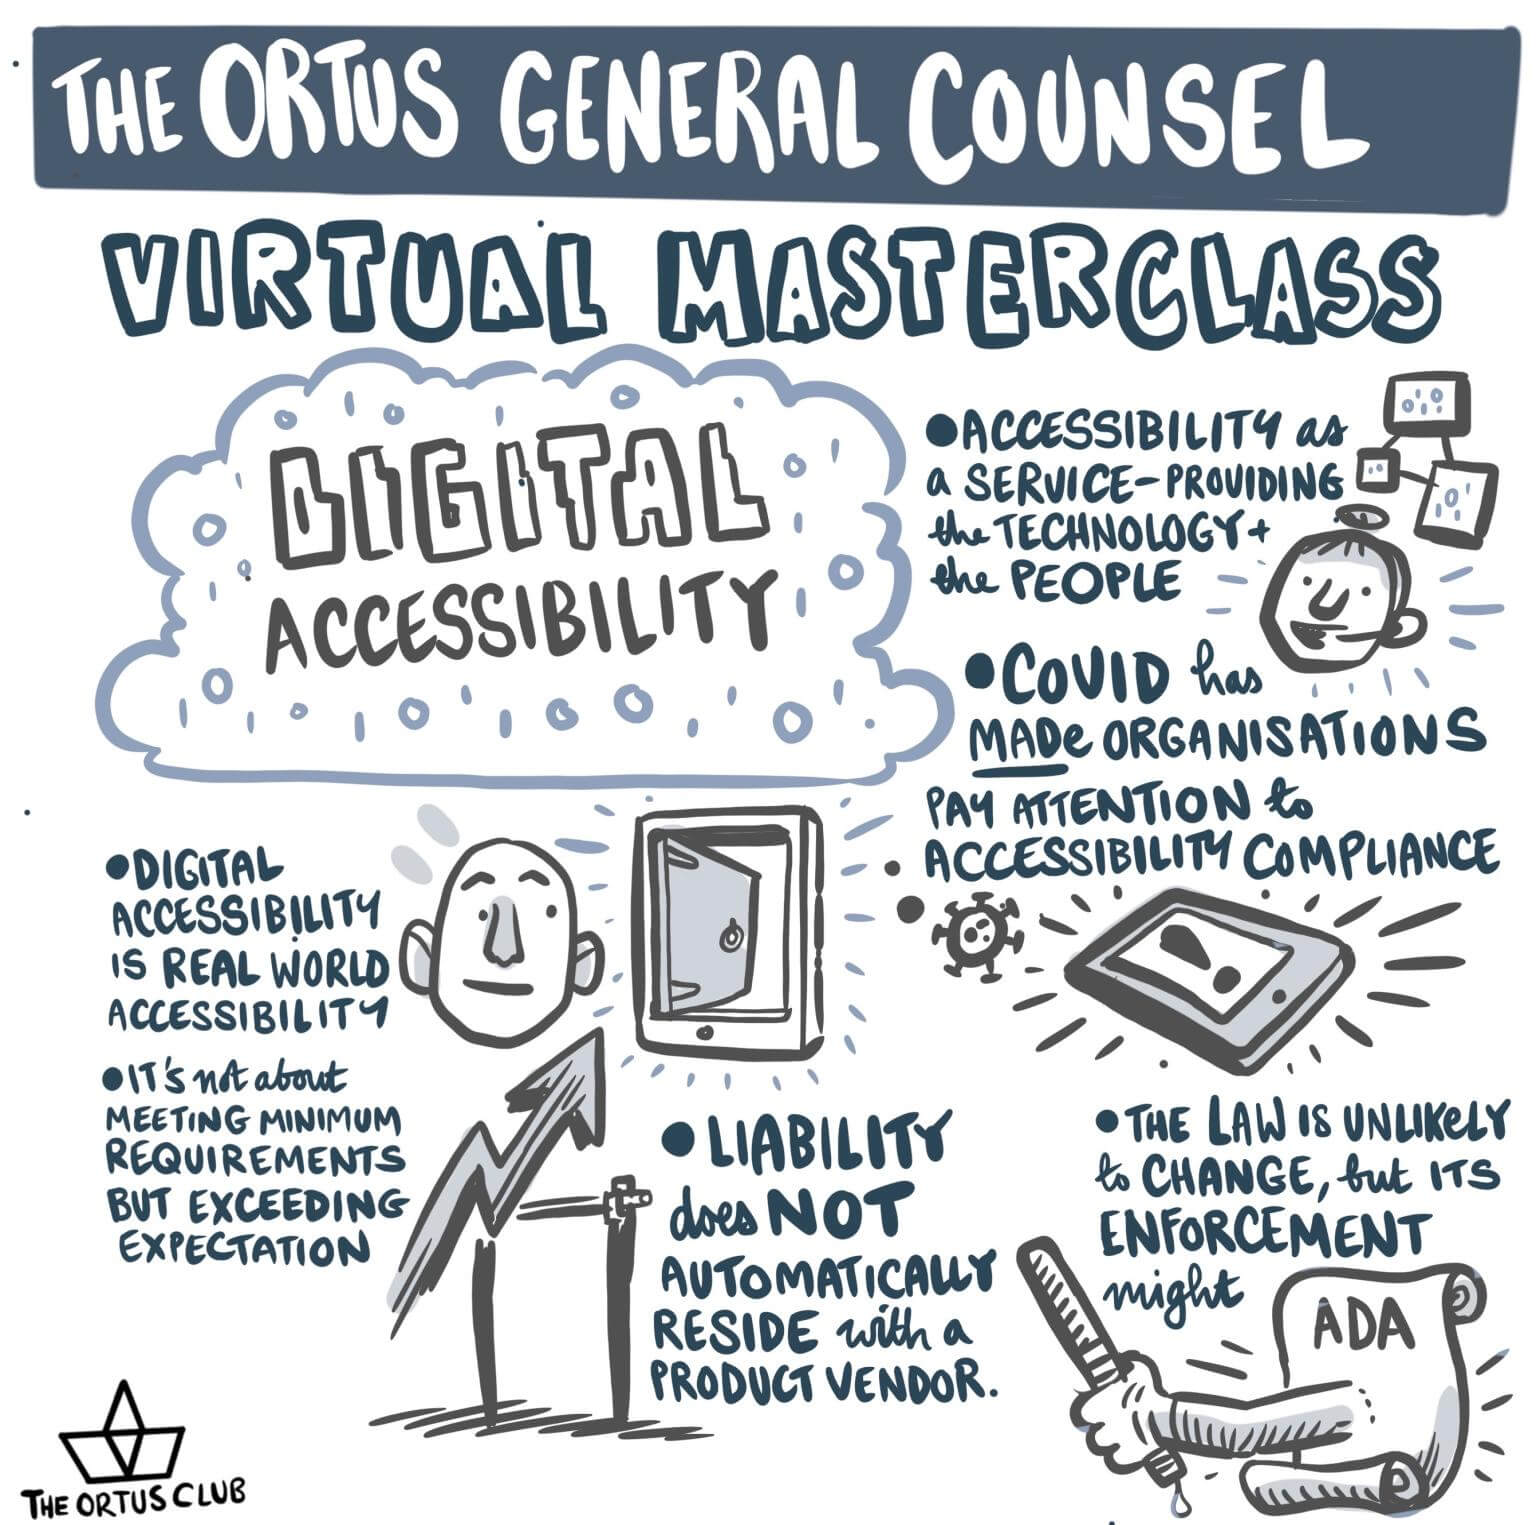 Artist rendering of topics discussed during virtual roundtable